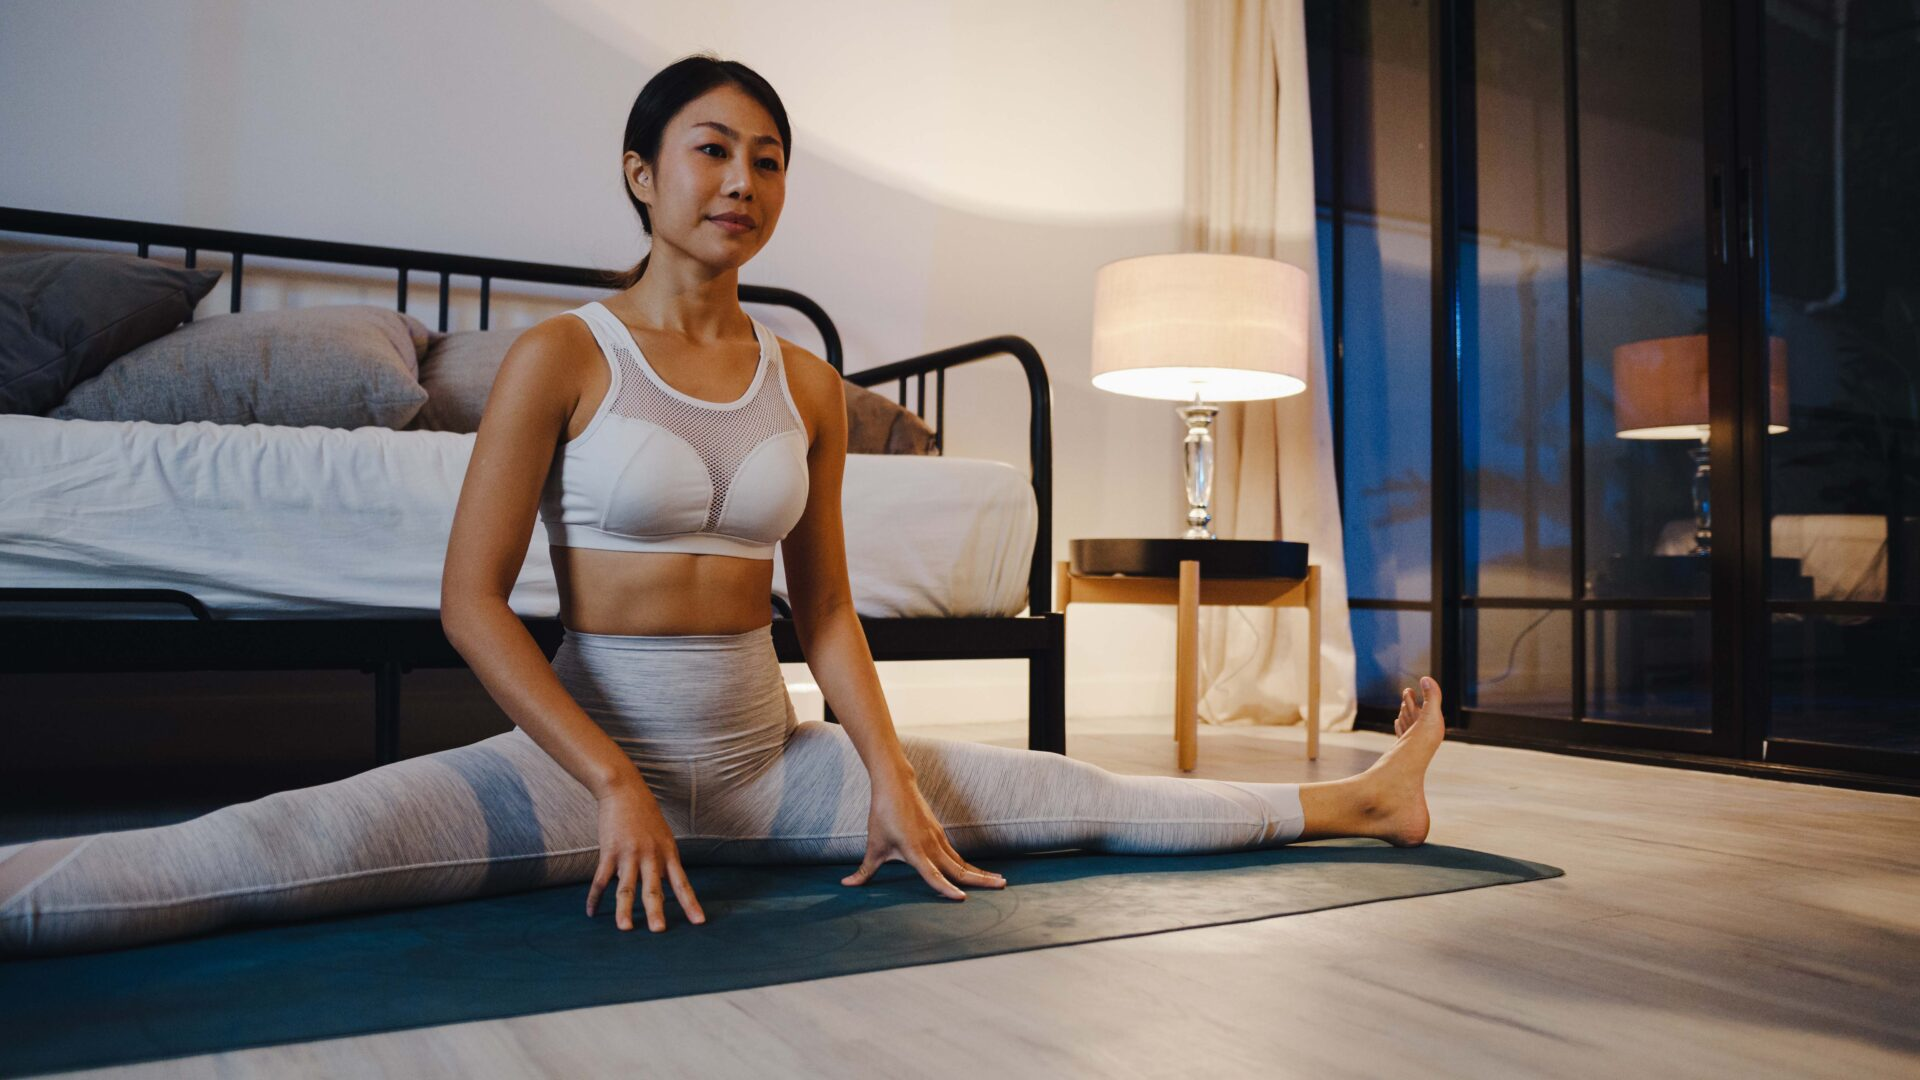 Young lady doing yoga exercise working out in bedroom